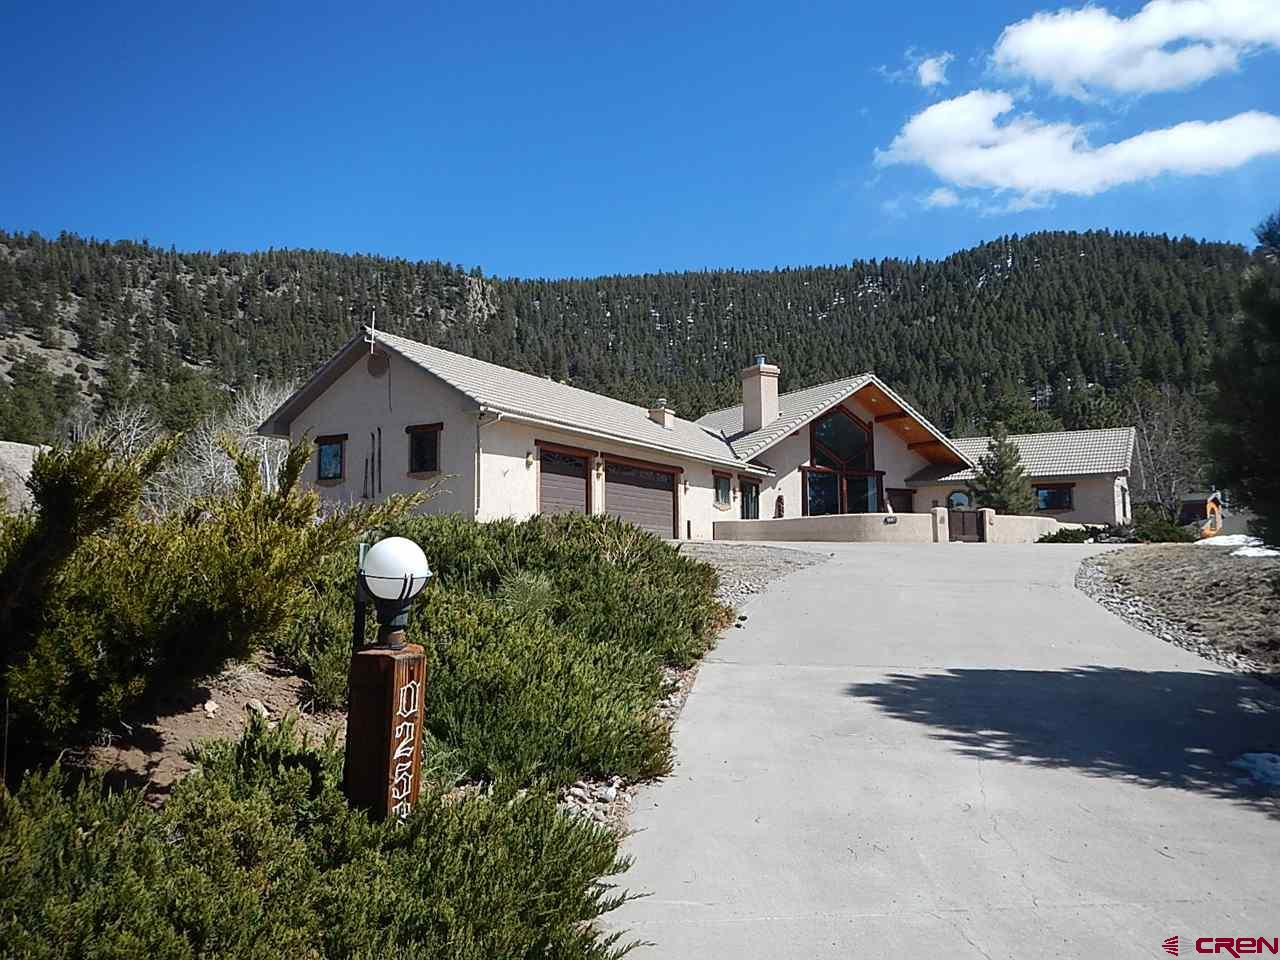 MLS# 768026 - 1 - 258 N Skyline Drive, South Fork, CO 81154